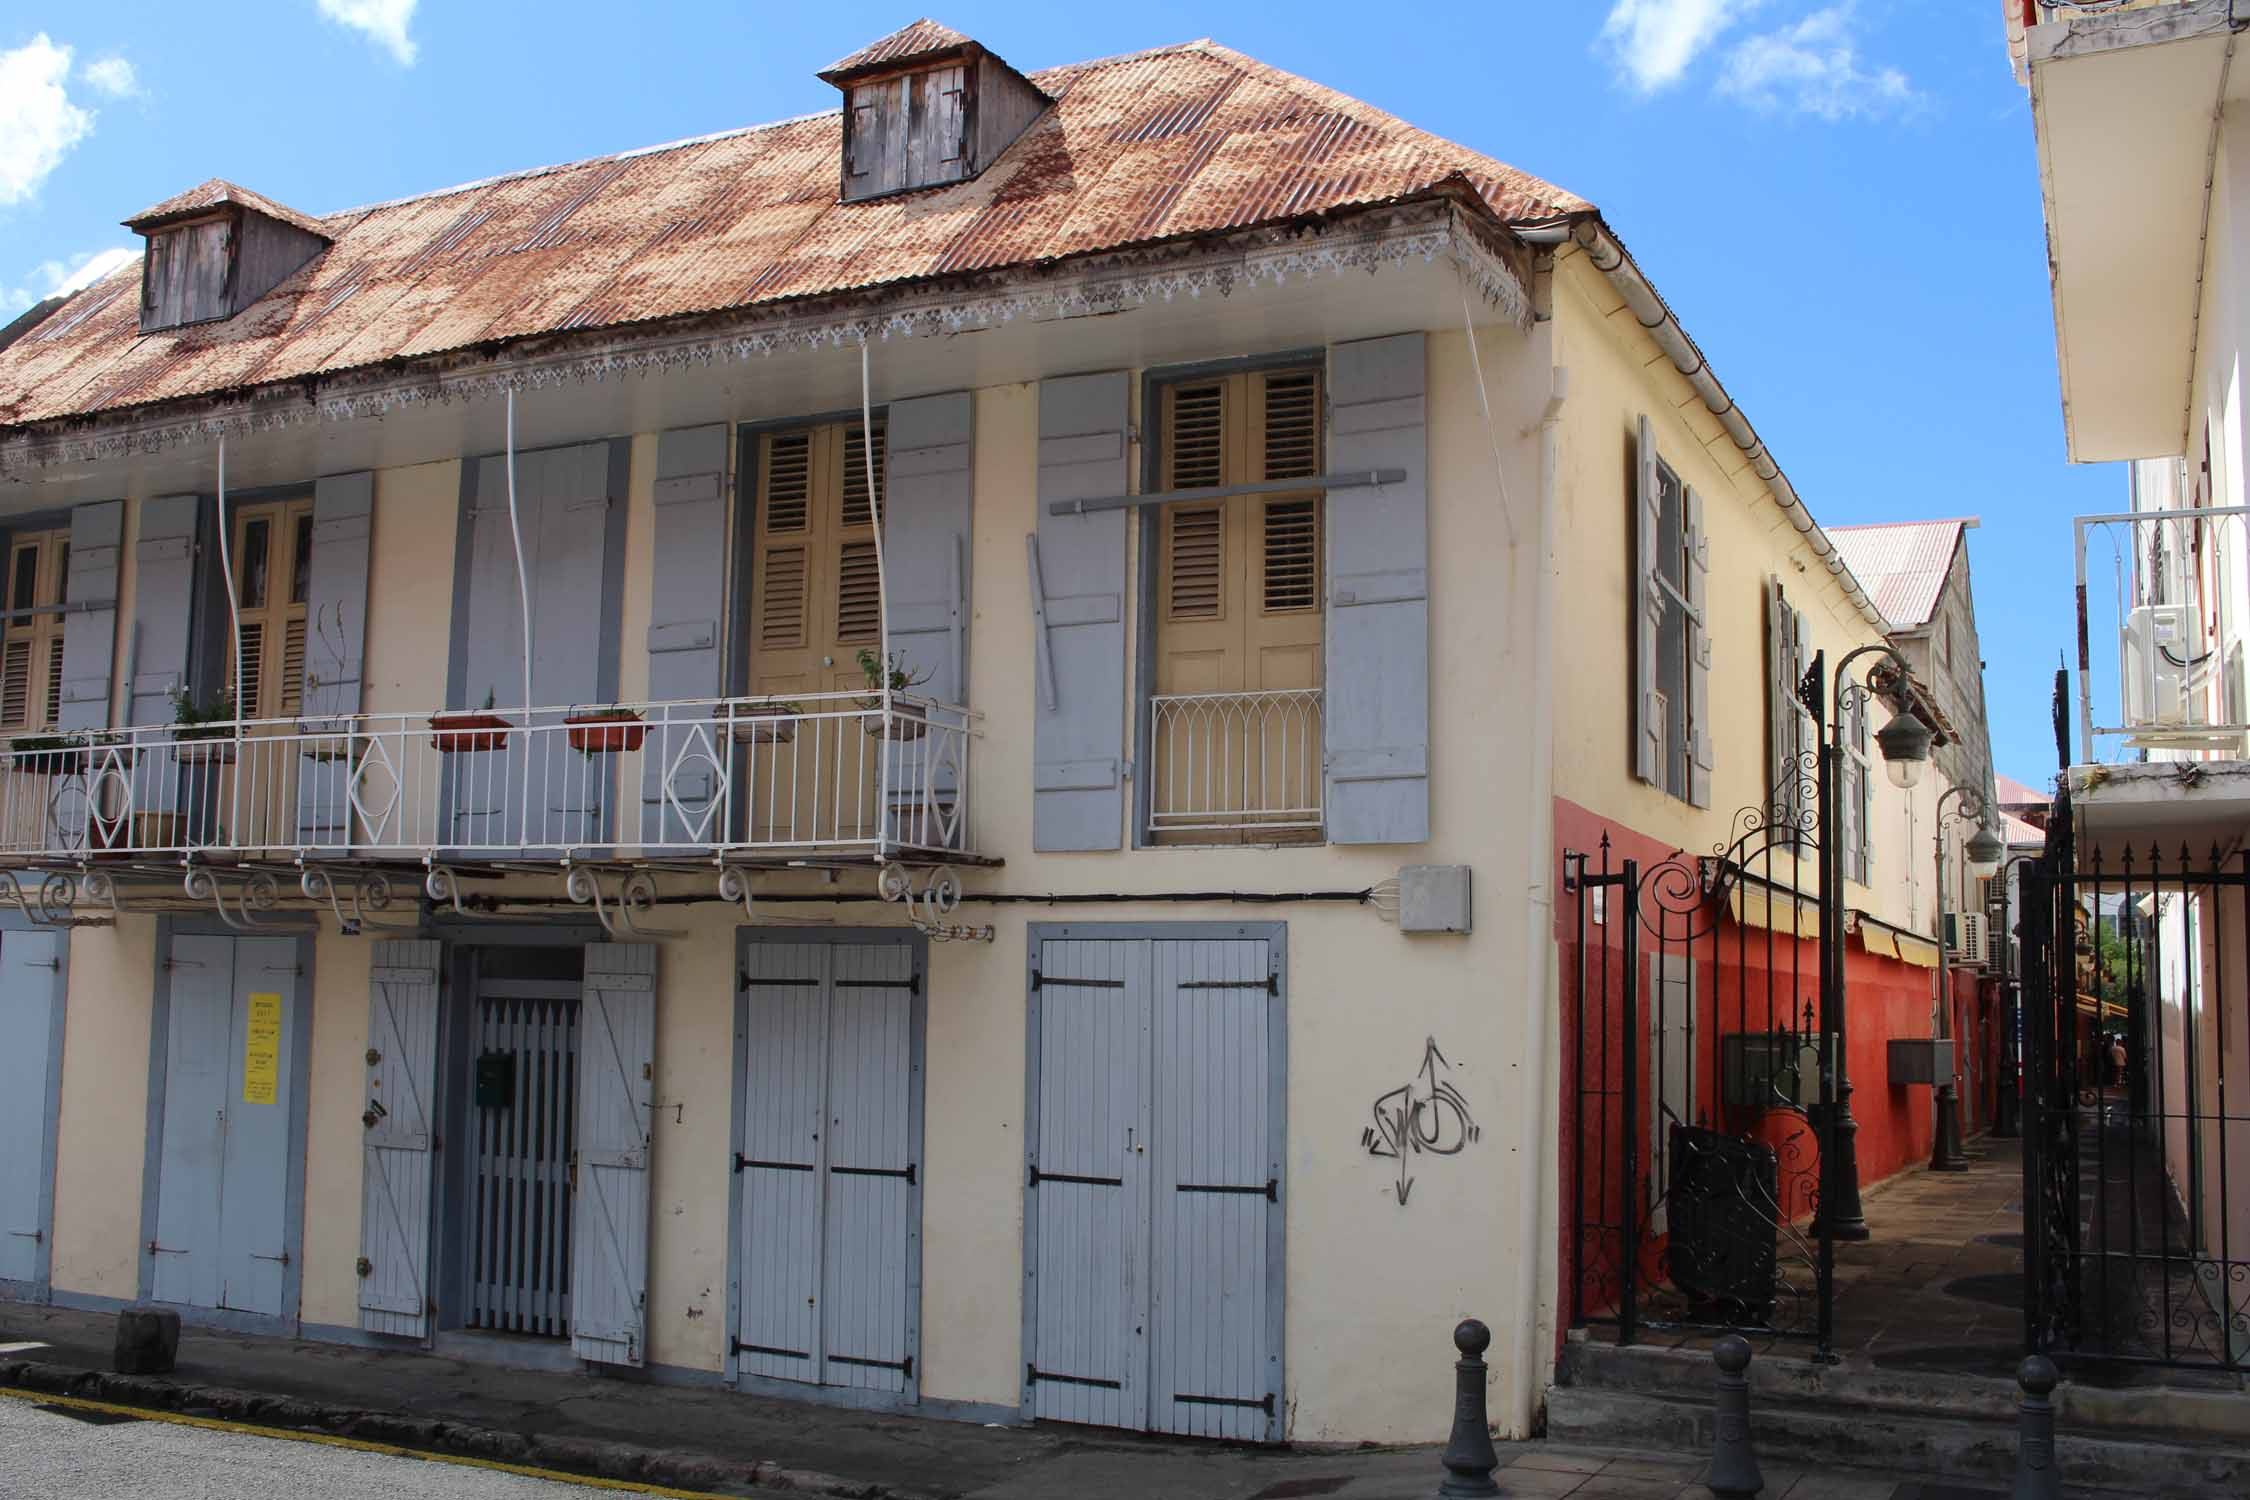 Basse-Terre, Guadeloupe, typical house